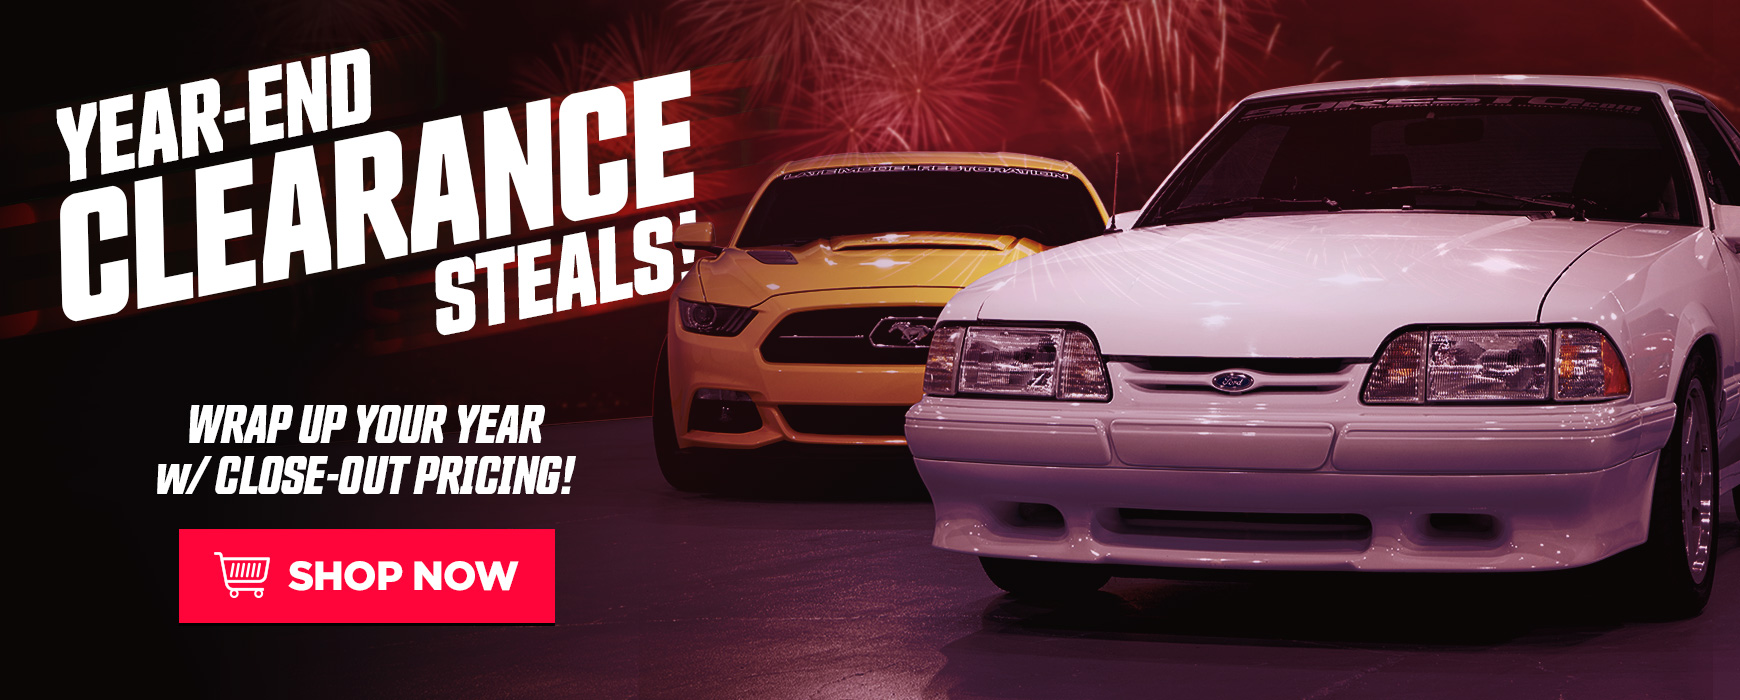 LMR Mustang Clearance Parts